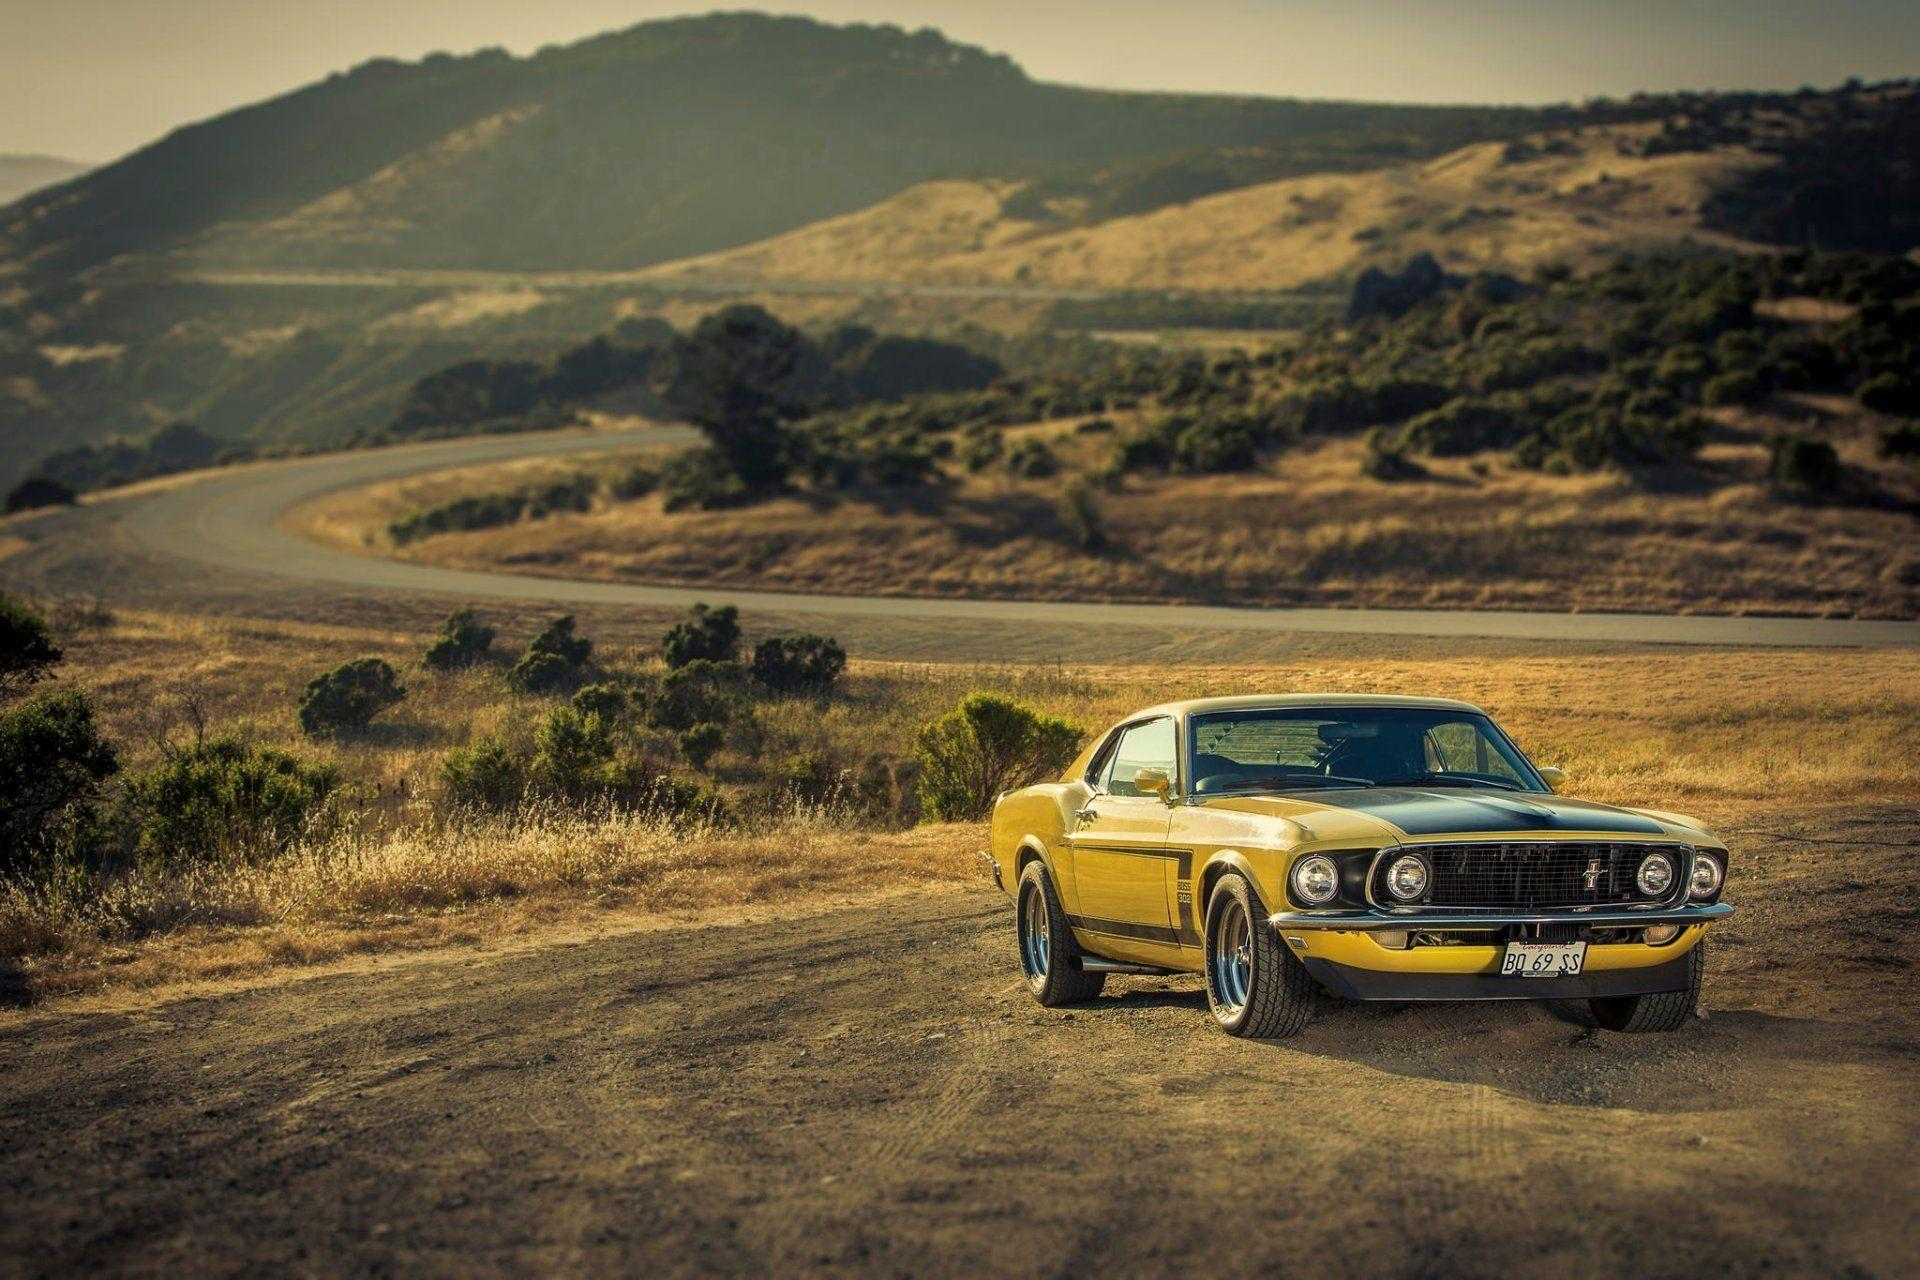 ford mustang boss yellow 1969 '69 muscle car ford mustang muscle